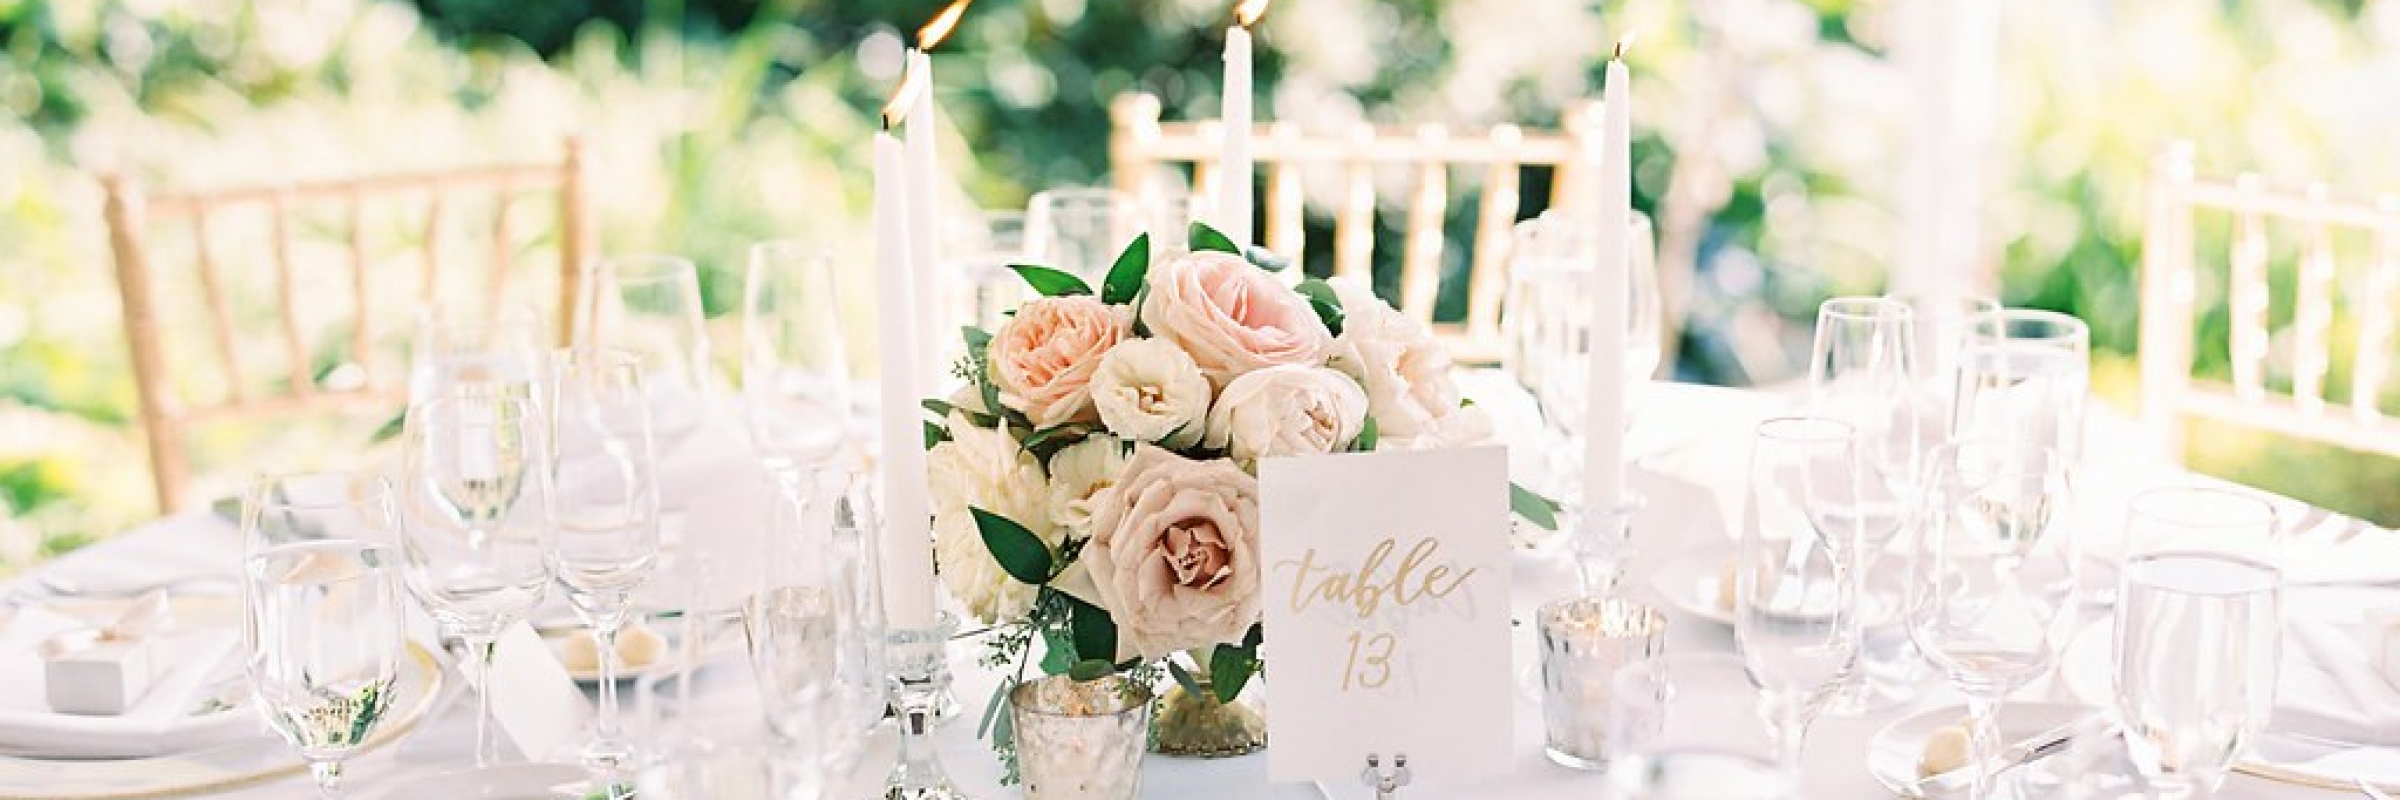 woodinville-winery-wedding-planner-white-blush-gold-wedding_0068